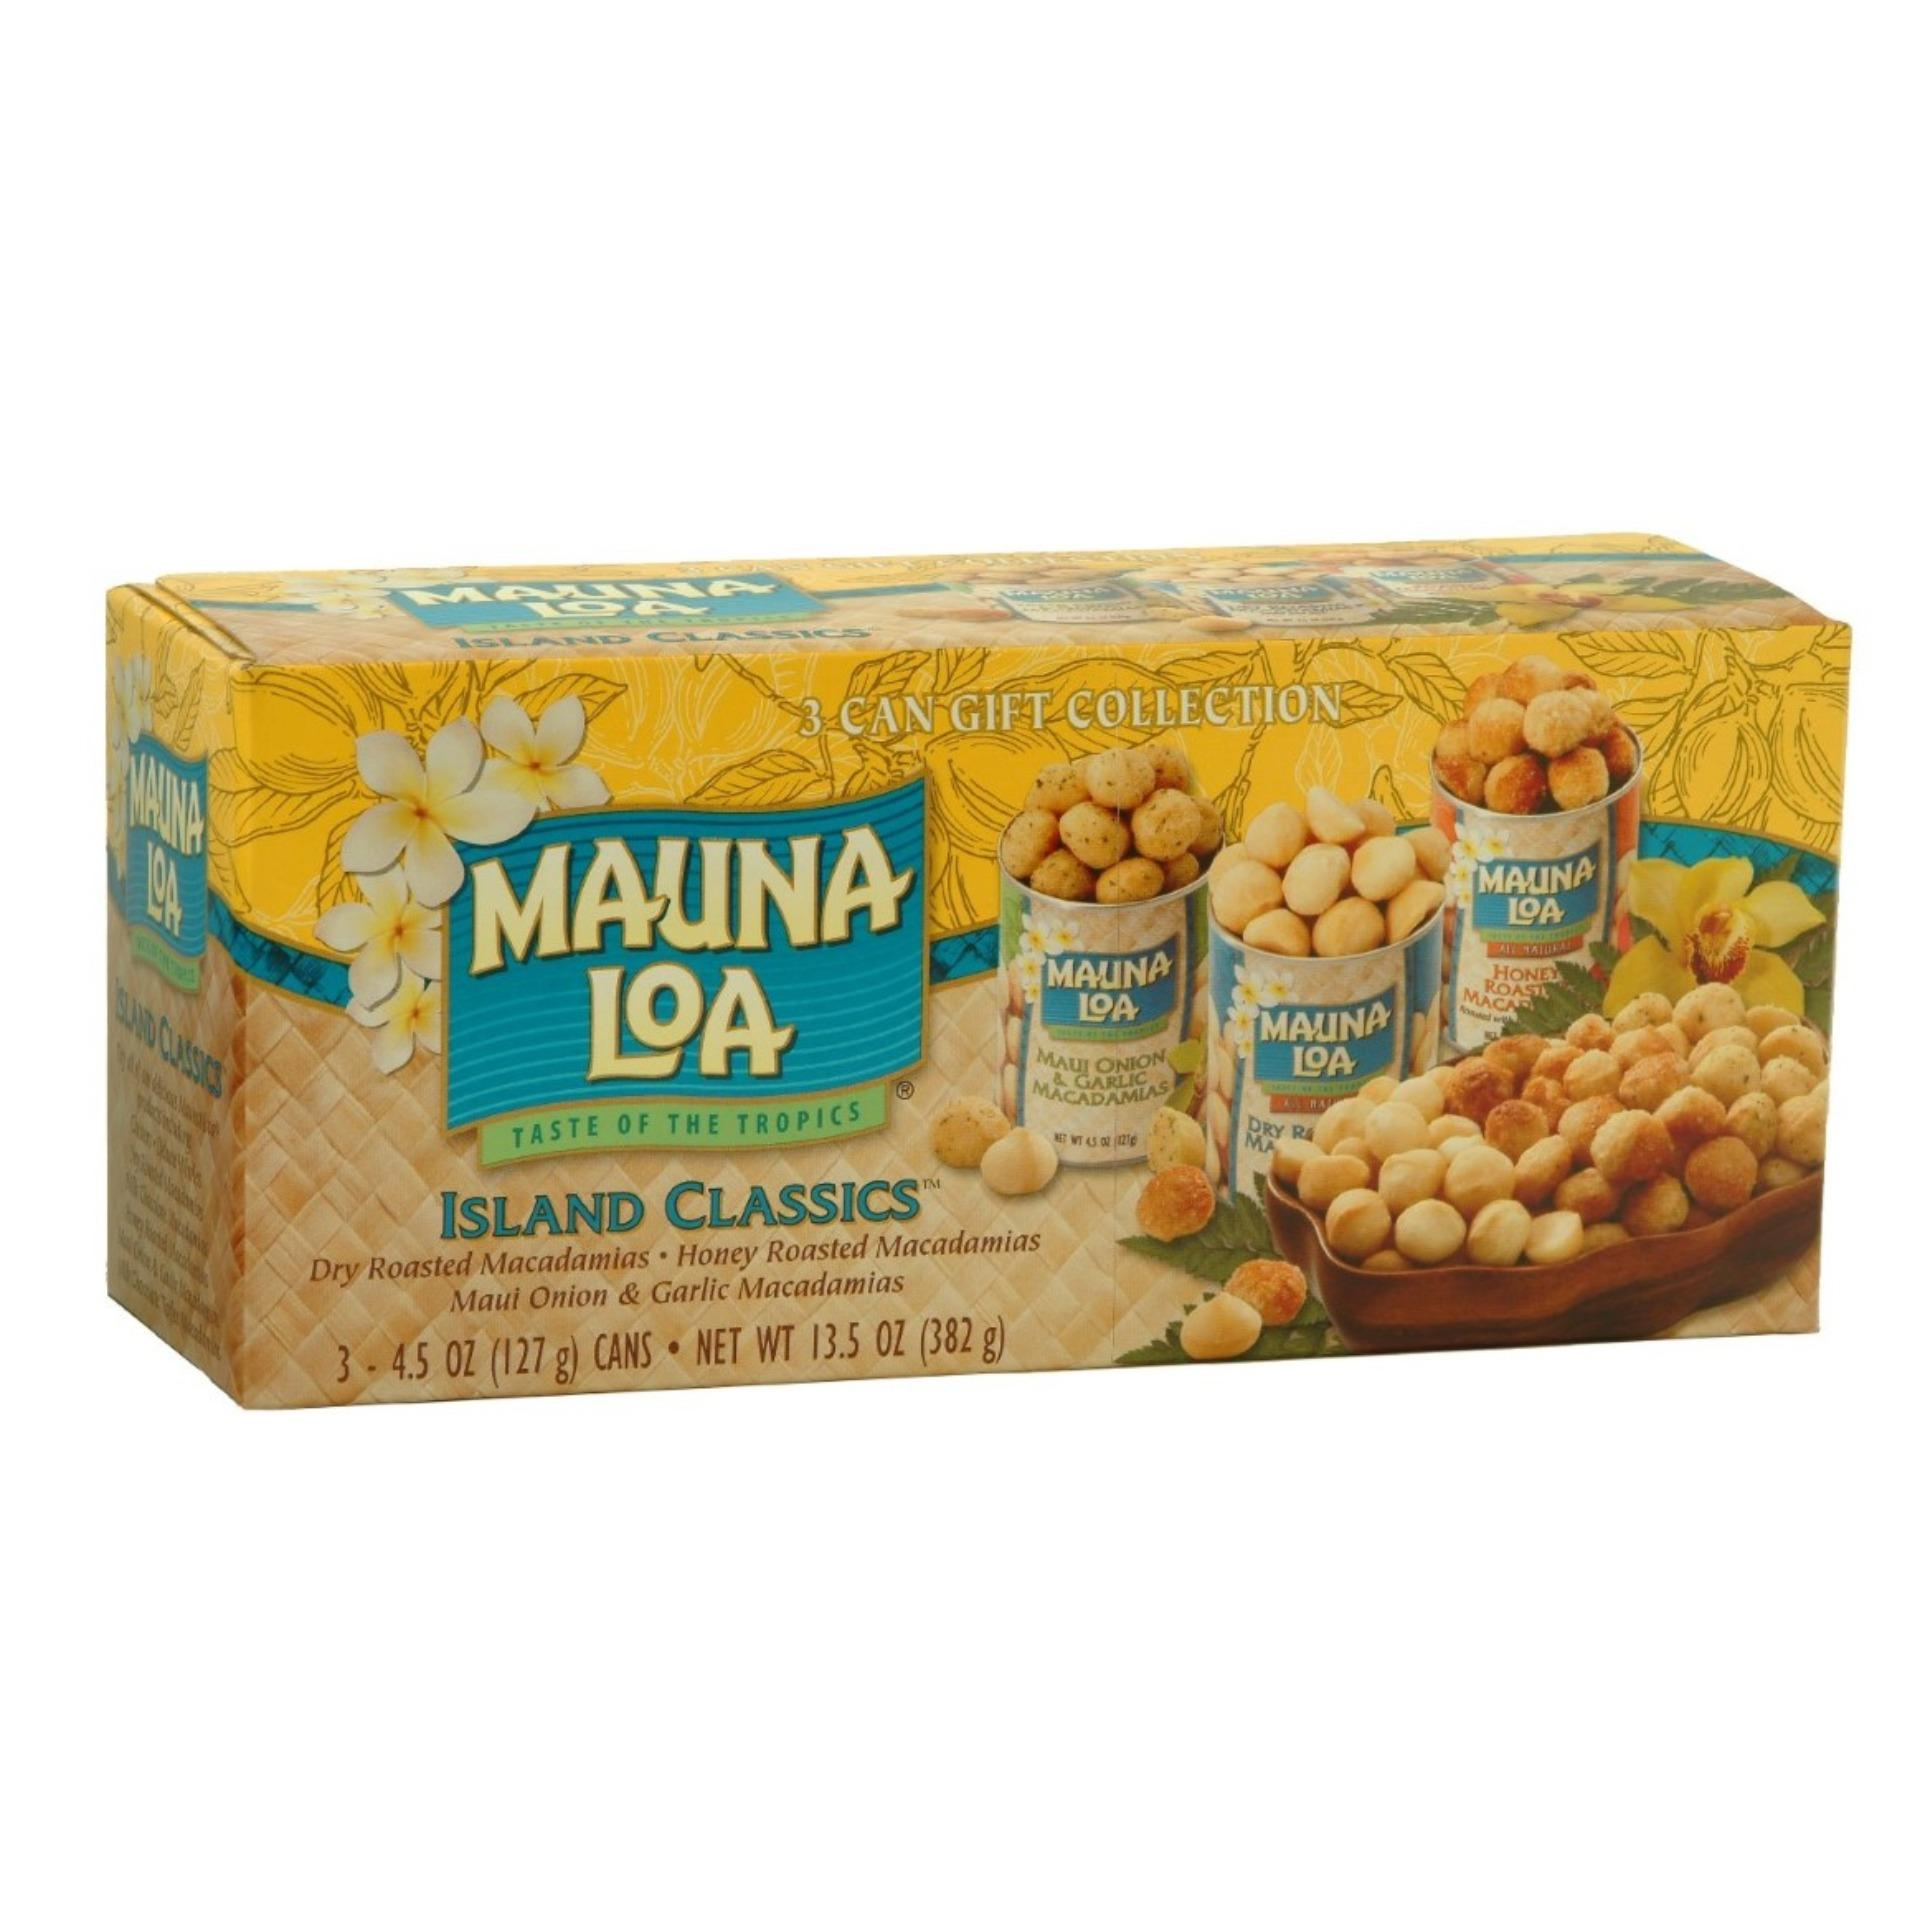 Buy Hawaii Mauna Loa Island Classic Gift Collection 3 Can Flavours Macadamia Nut Online Singapore